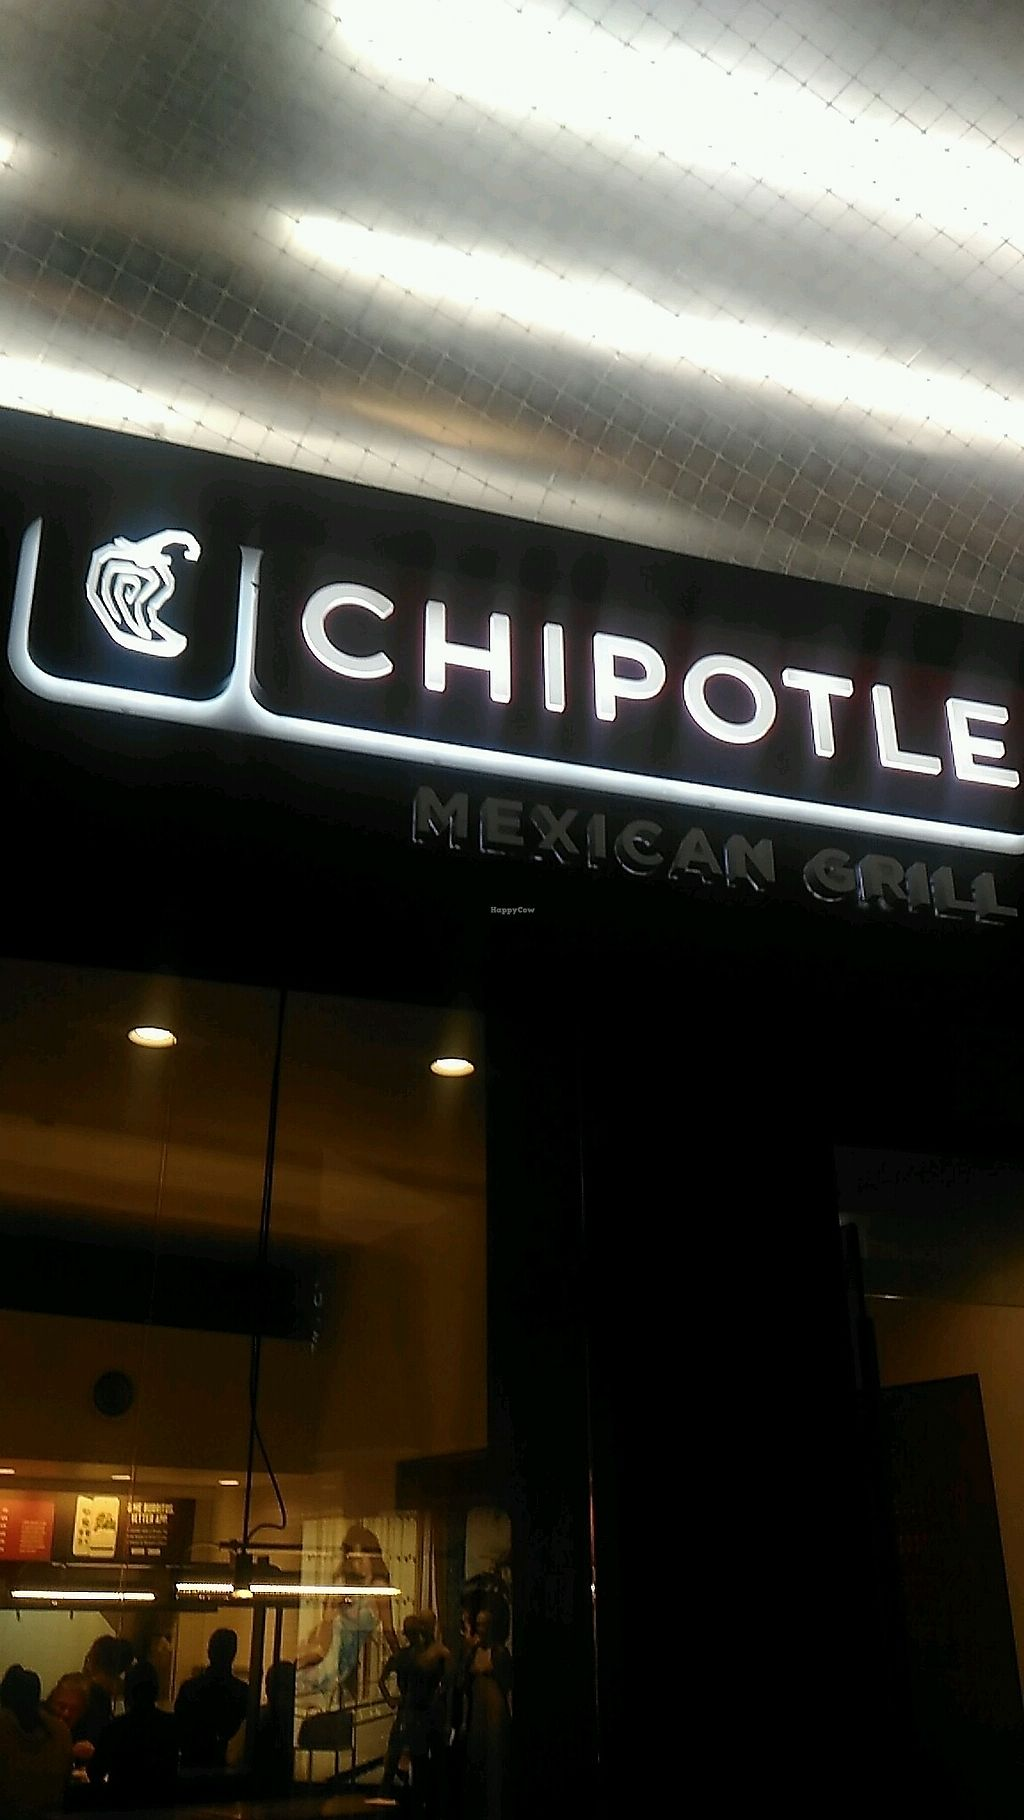 """Photo of Chipotle  by <a href=""""/members/profile/QuothTheRaven"""">QuothTheRaven</a> <br/>outside <br/> March 23, 2018  - <a href='/contact/abuse/image/42742/374645'>Report</a>"""